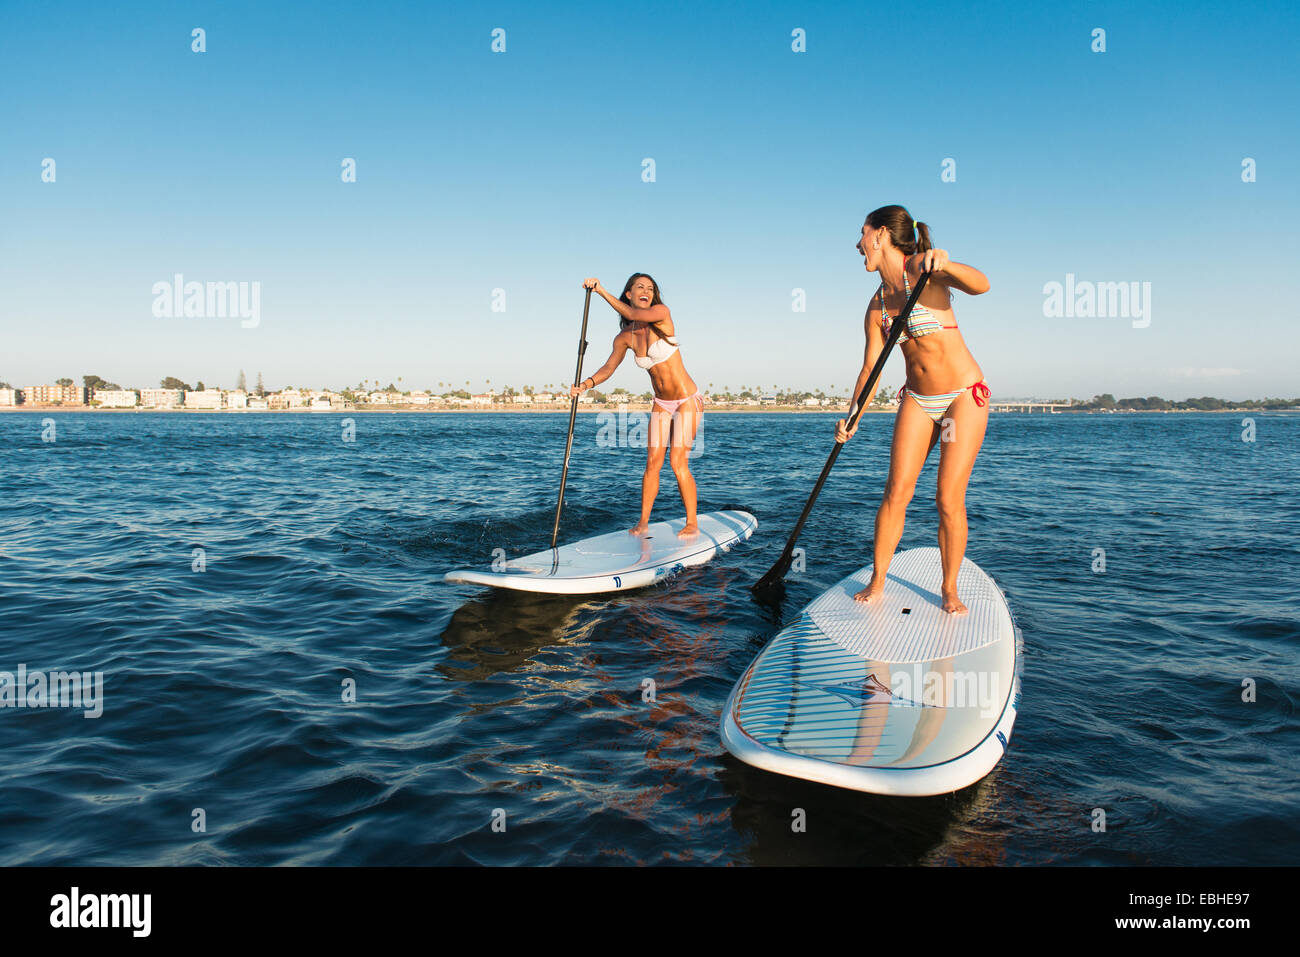 Two women chatting whilst stand up paddleboarding, Mission Bay, San Diego, California, USA - Stock Image